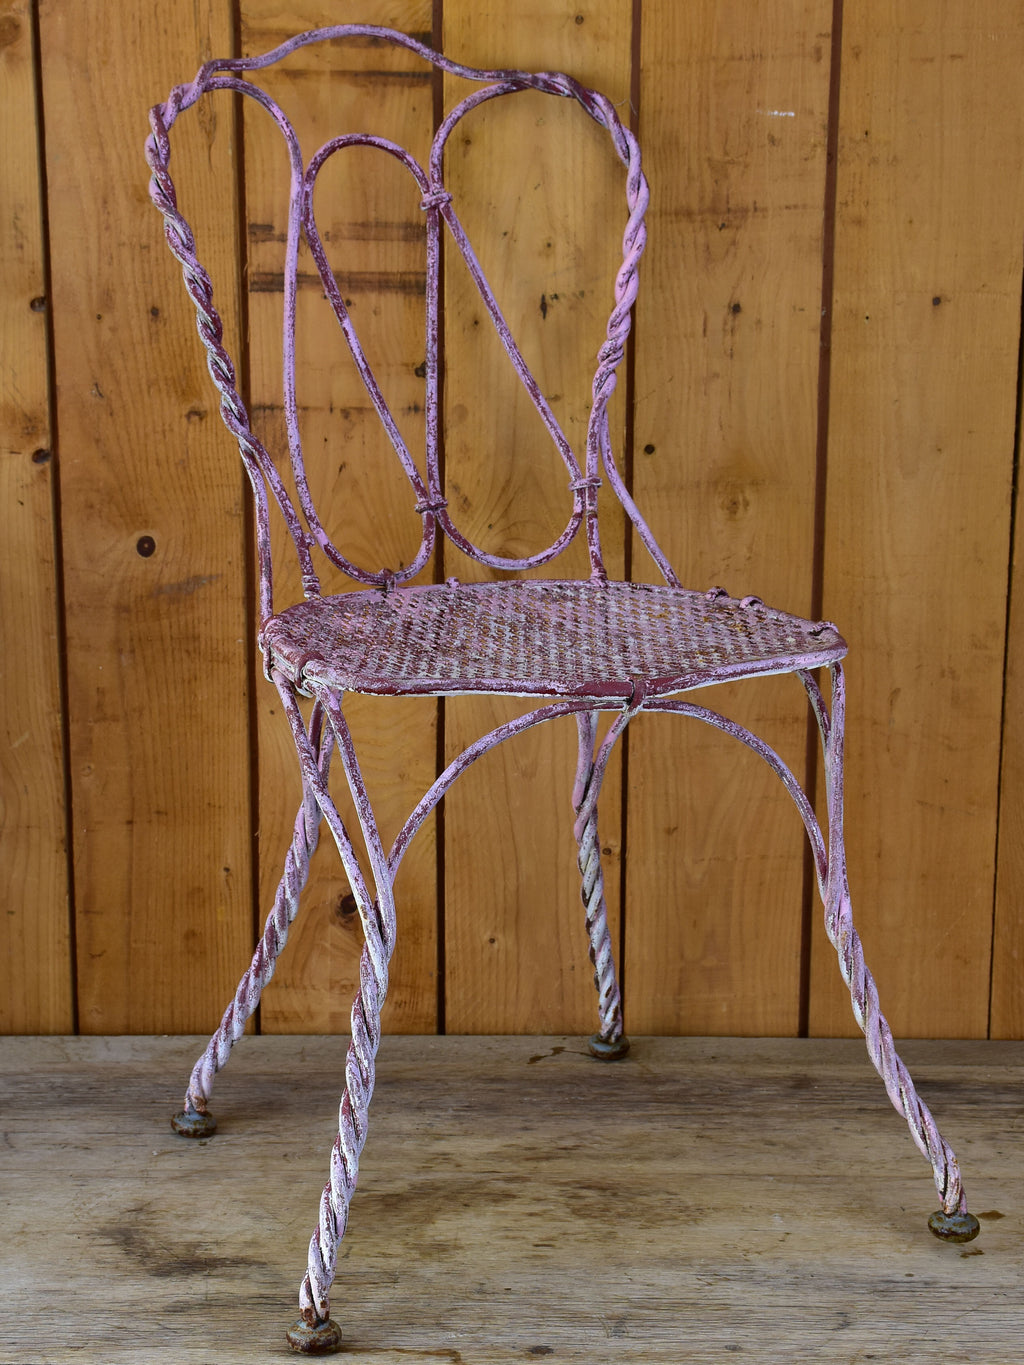 Charming antique French garden chair with pink patina